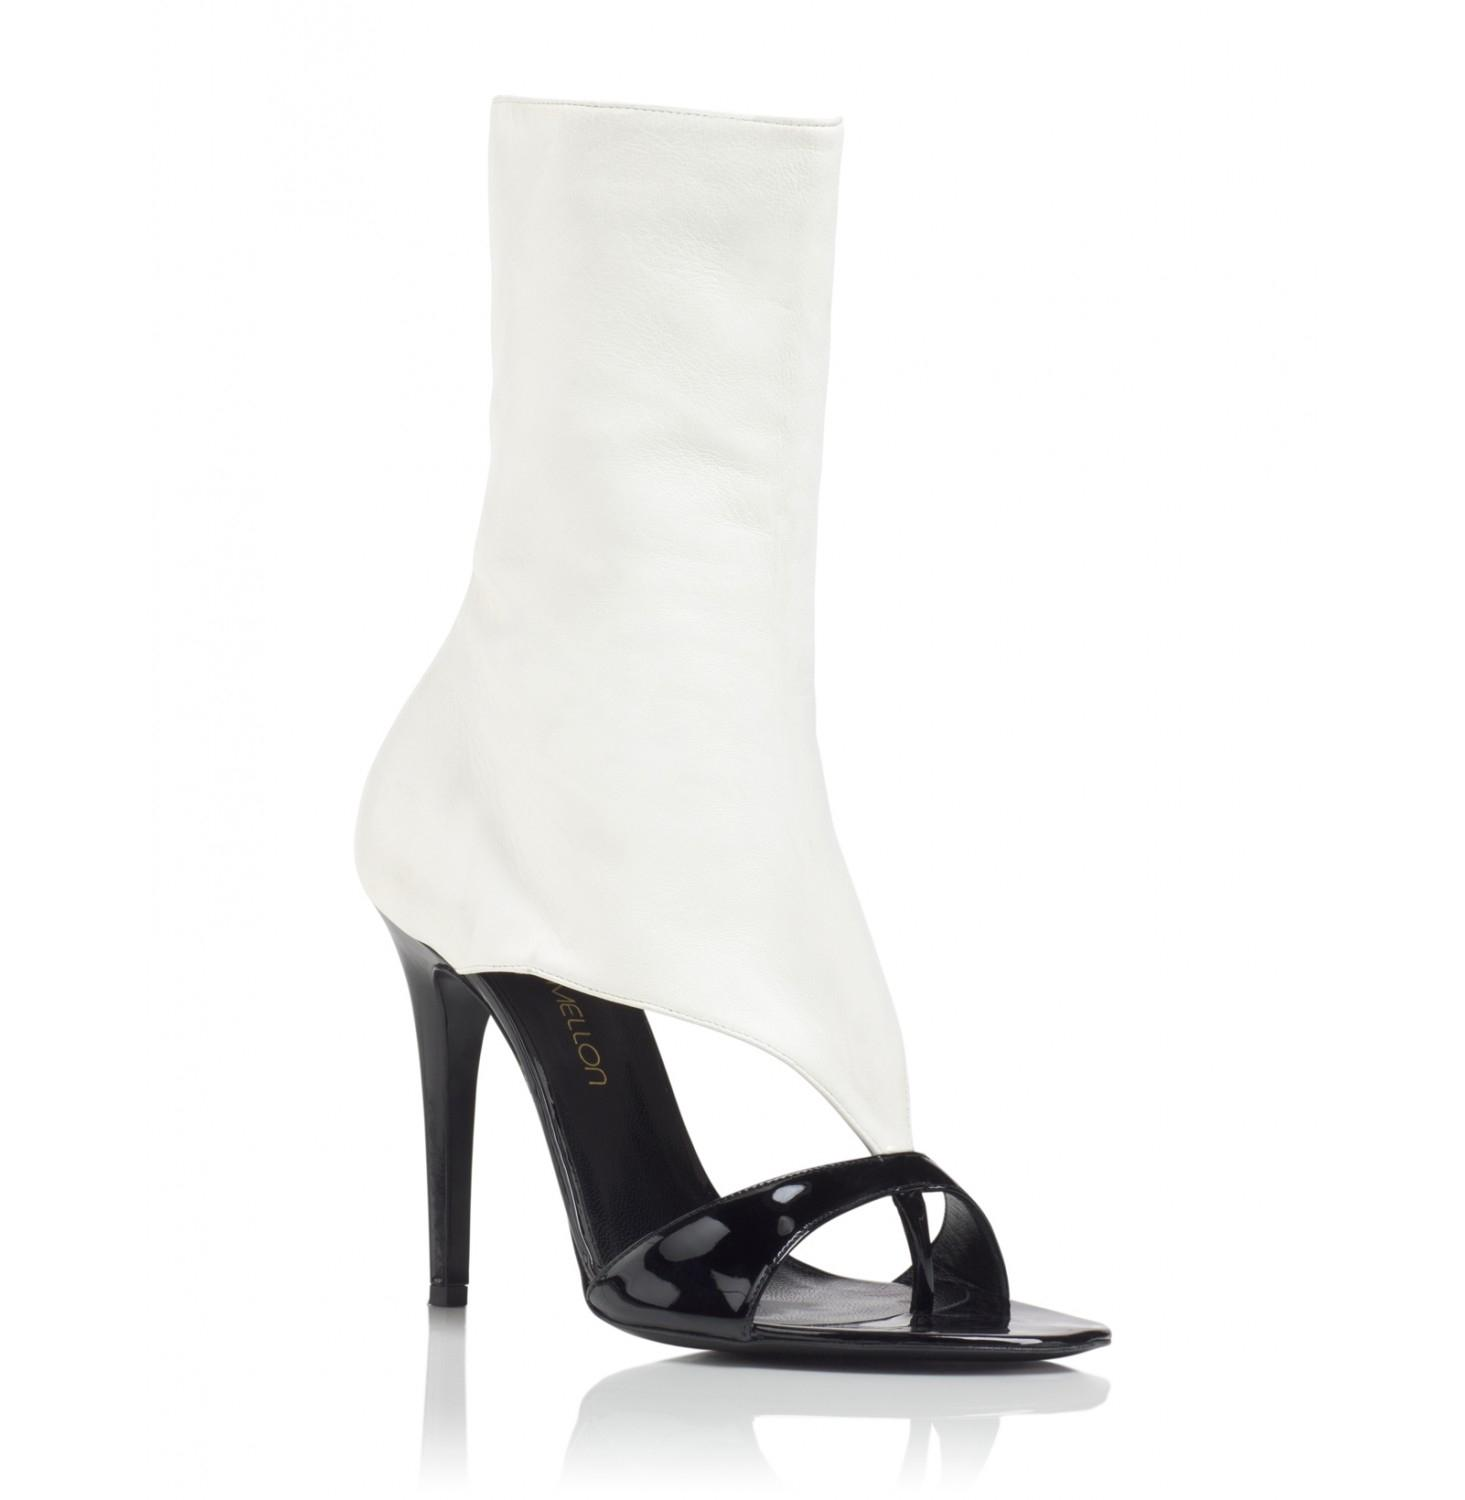 Tamara Mellon Black/Cream Basic Instinct 105mm Heels Sandals Size EU 37 (Approx. US 7) Regular (M, B)